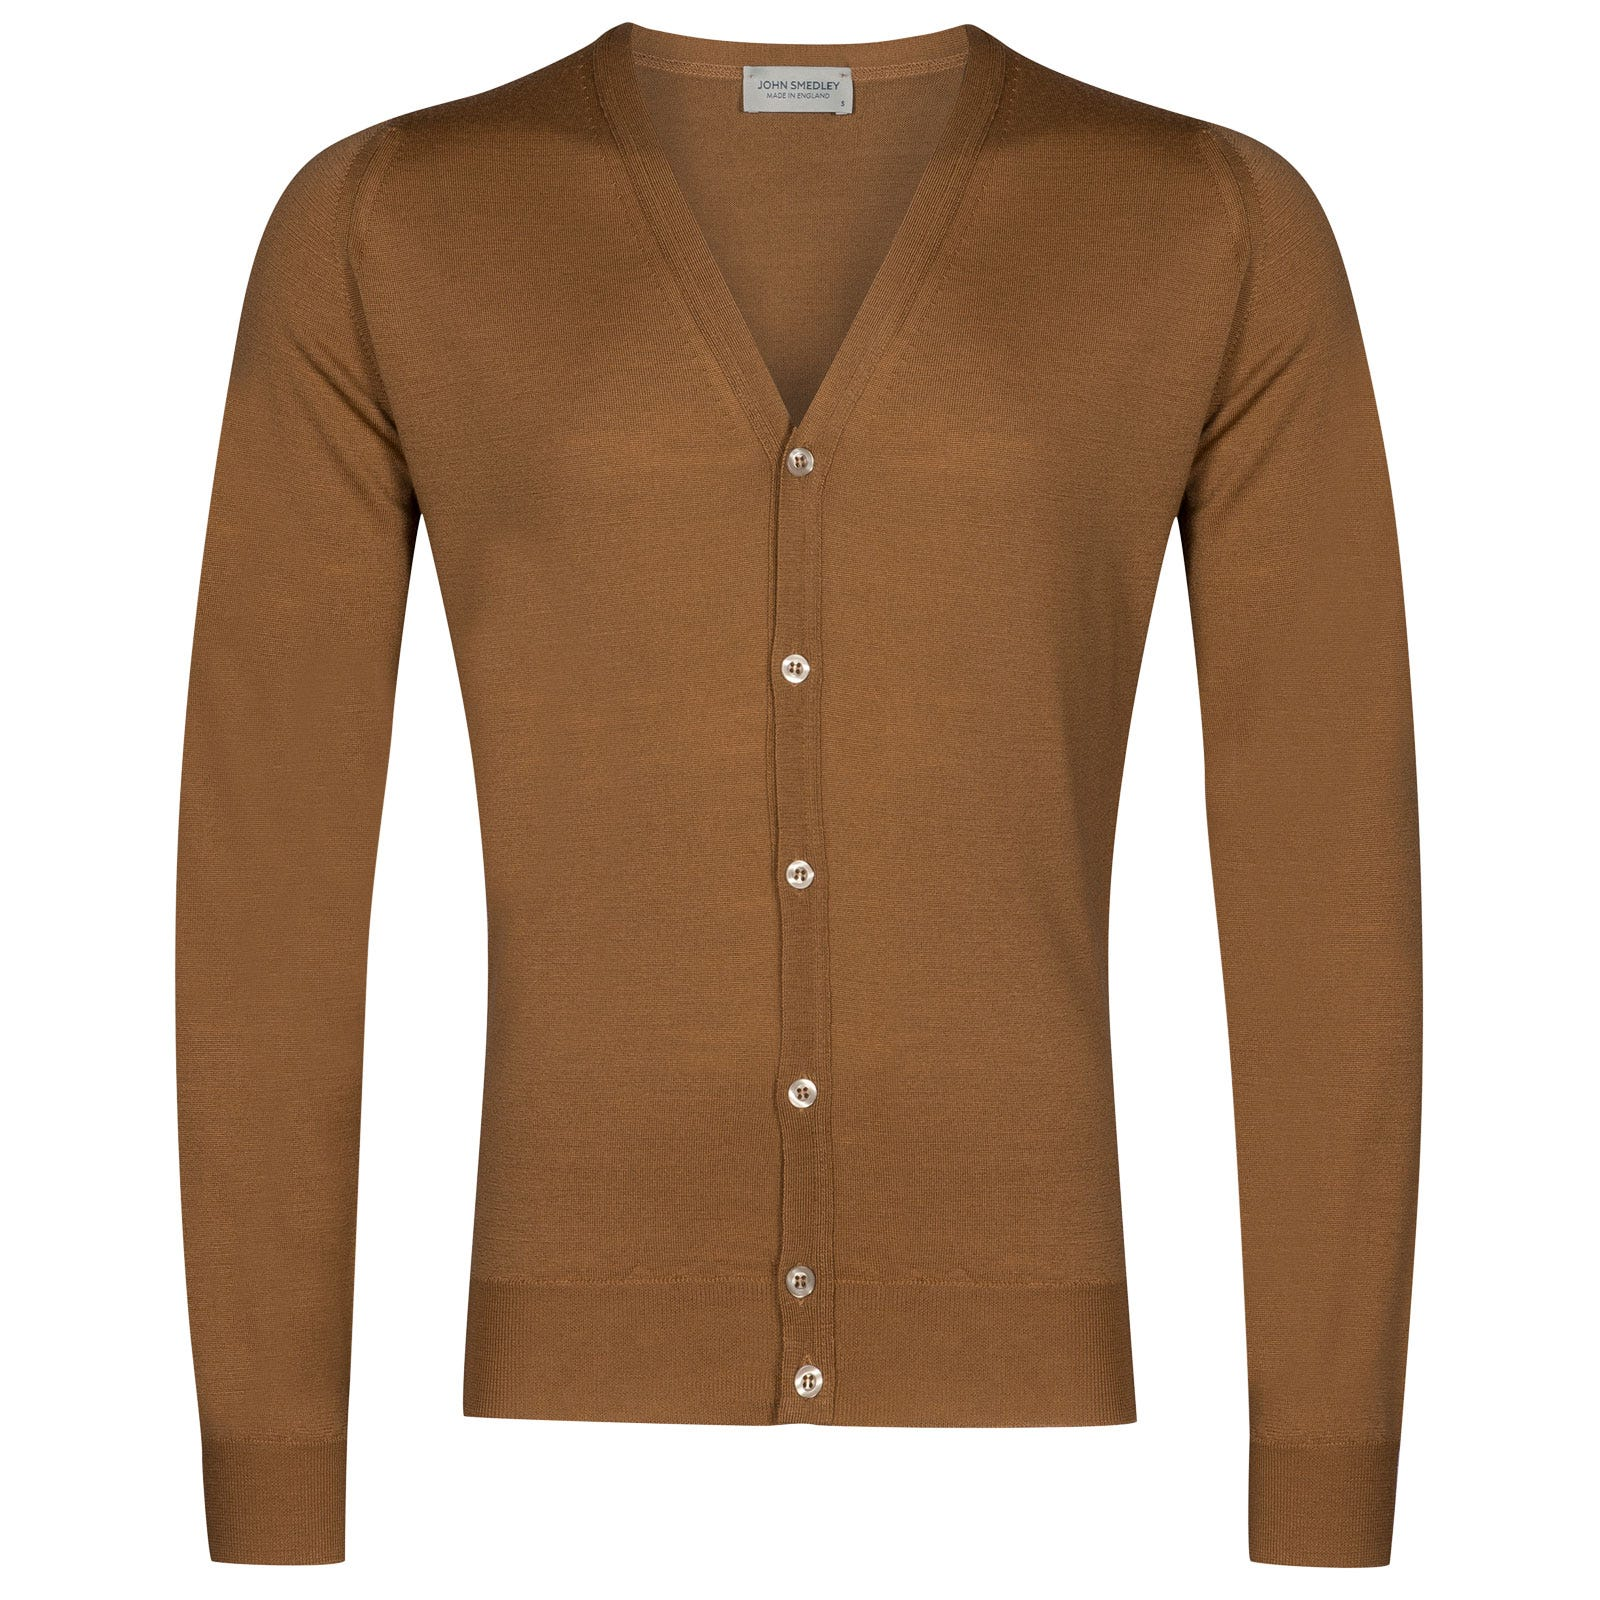 John Smedley petworth Merino Wool Cardigan in Camel-M